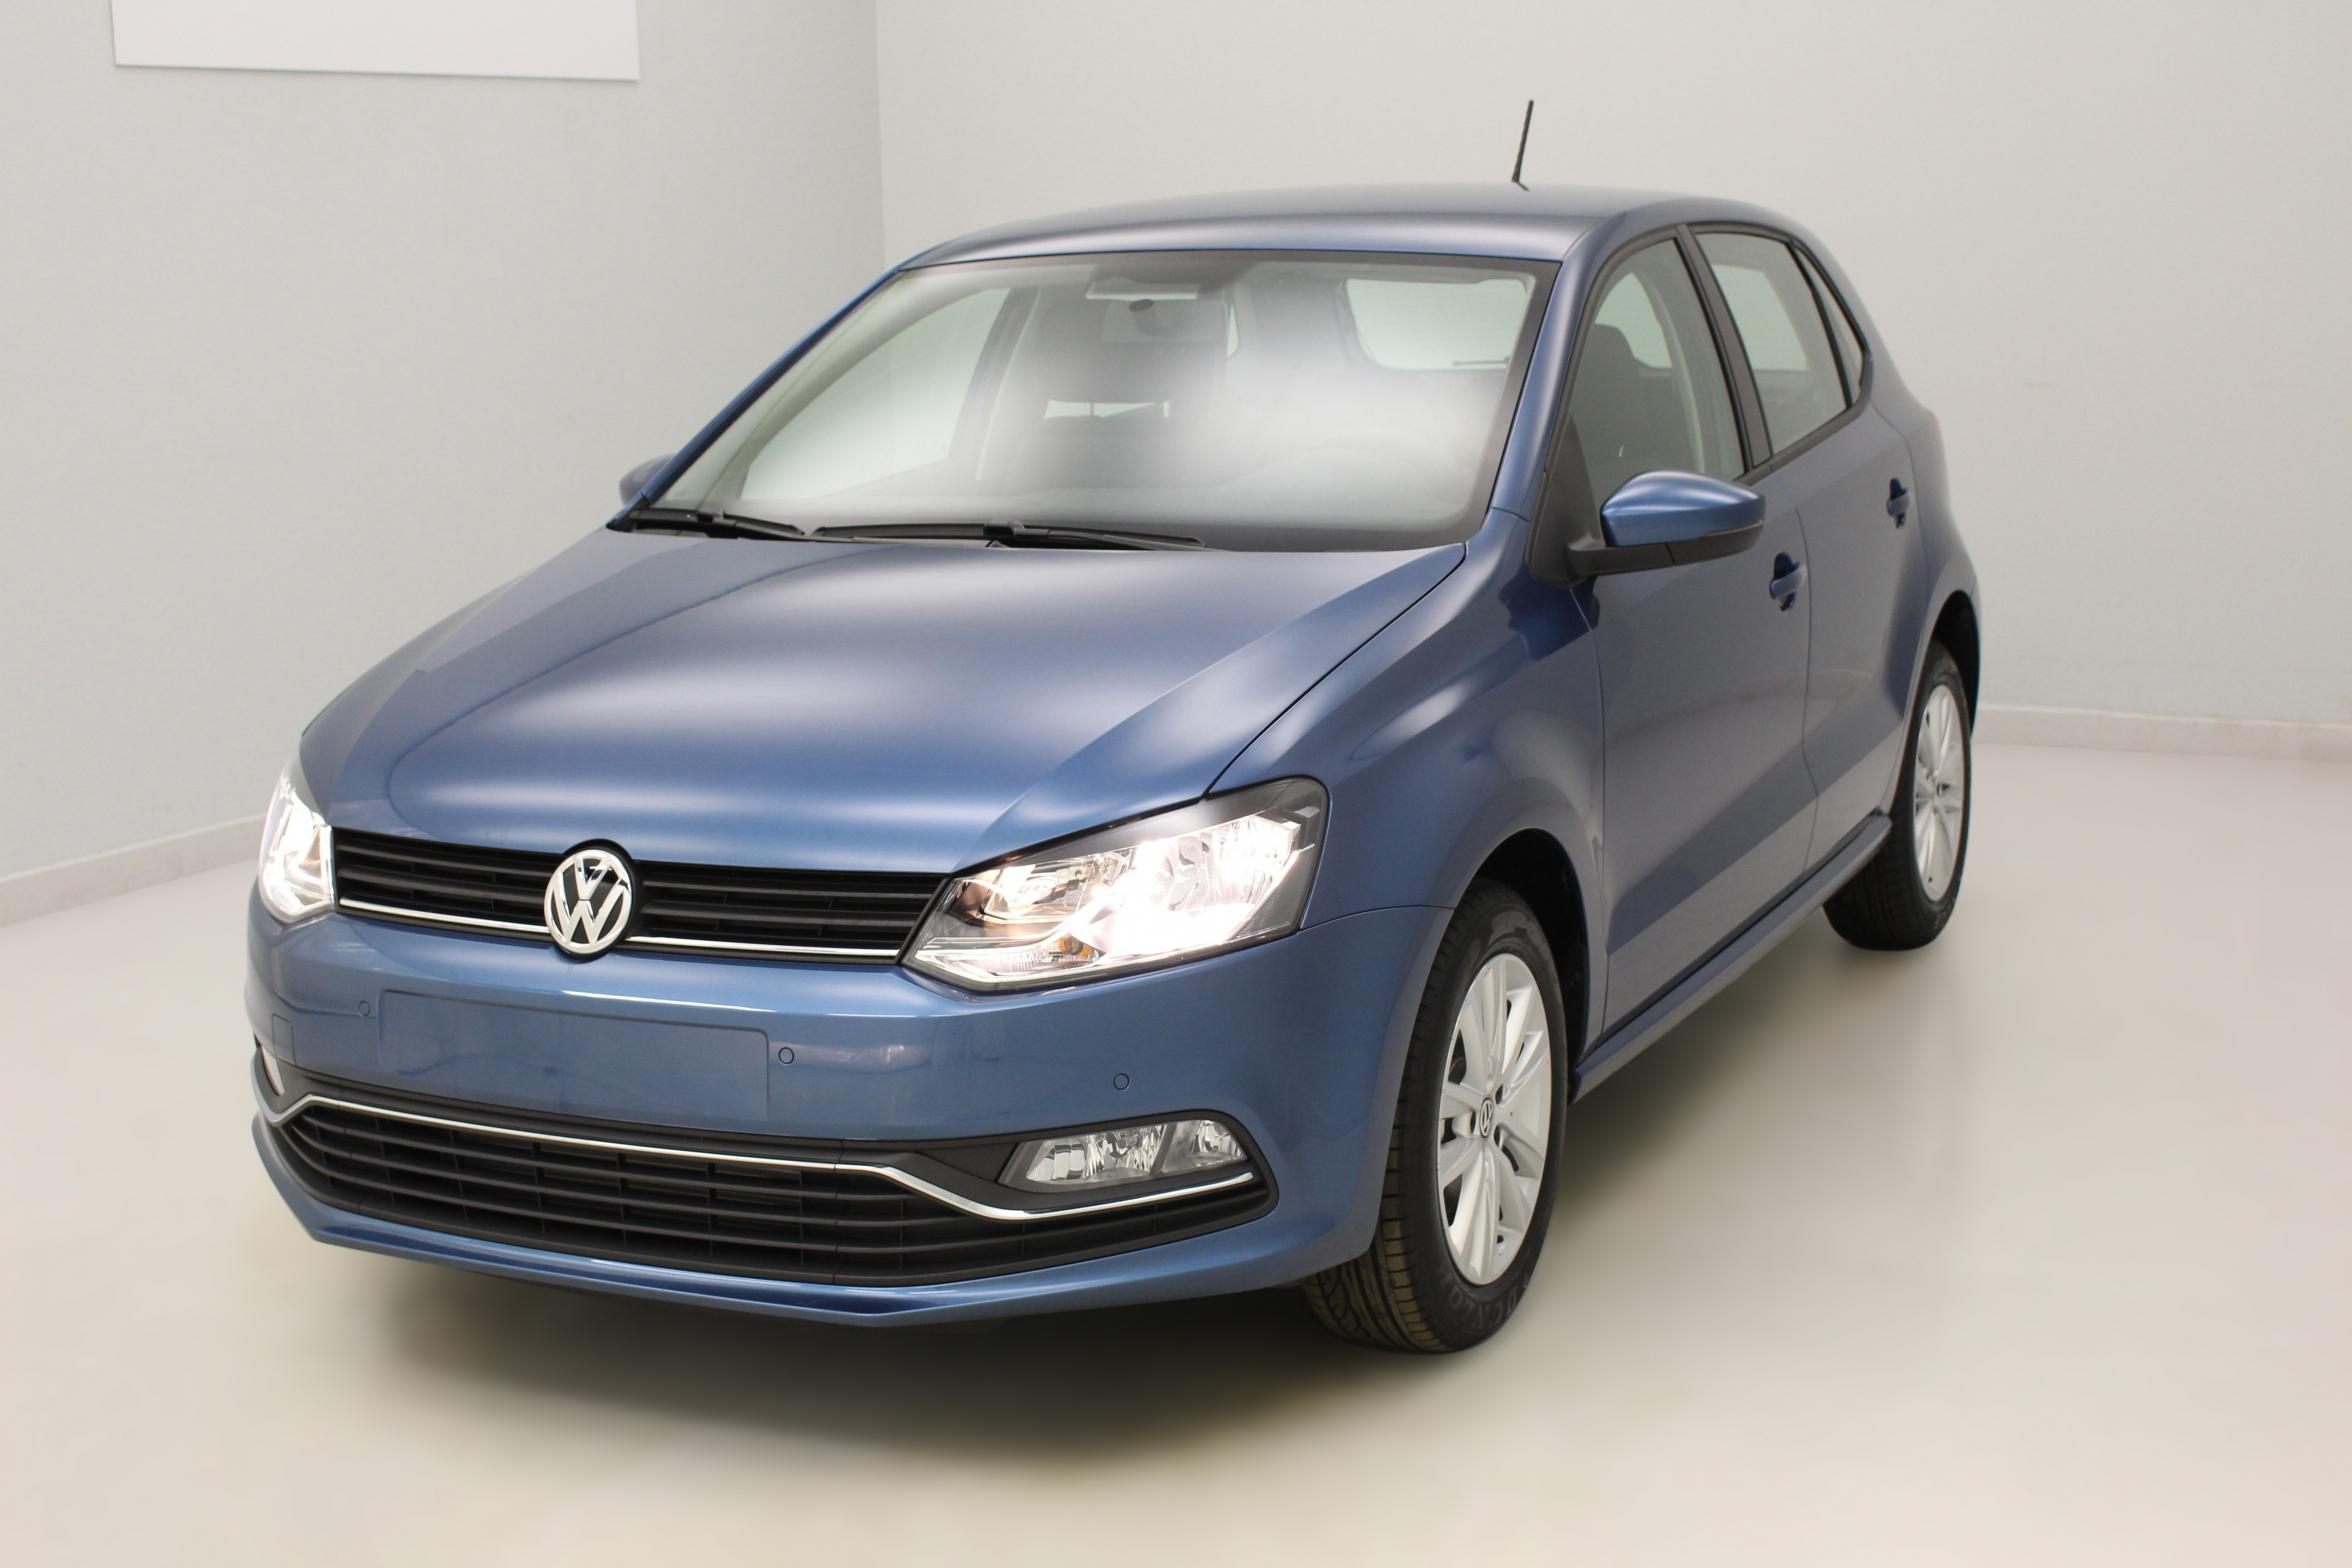 VOLKSWAGEN Nouvelle Polo 1.4 TDI 90 BlueMotion Technology Confortline Bleu Silk - Garantie 5 ans ou 100.000 kms avec options